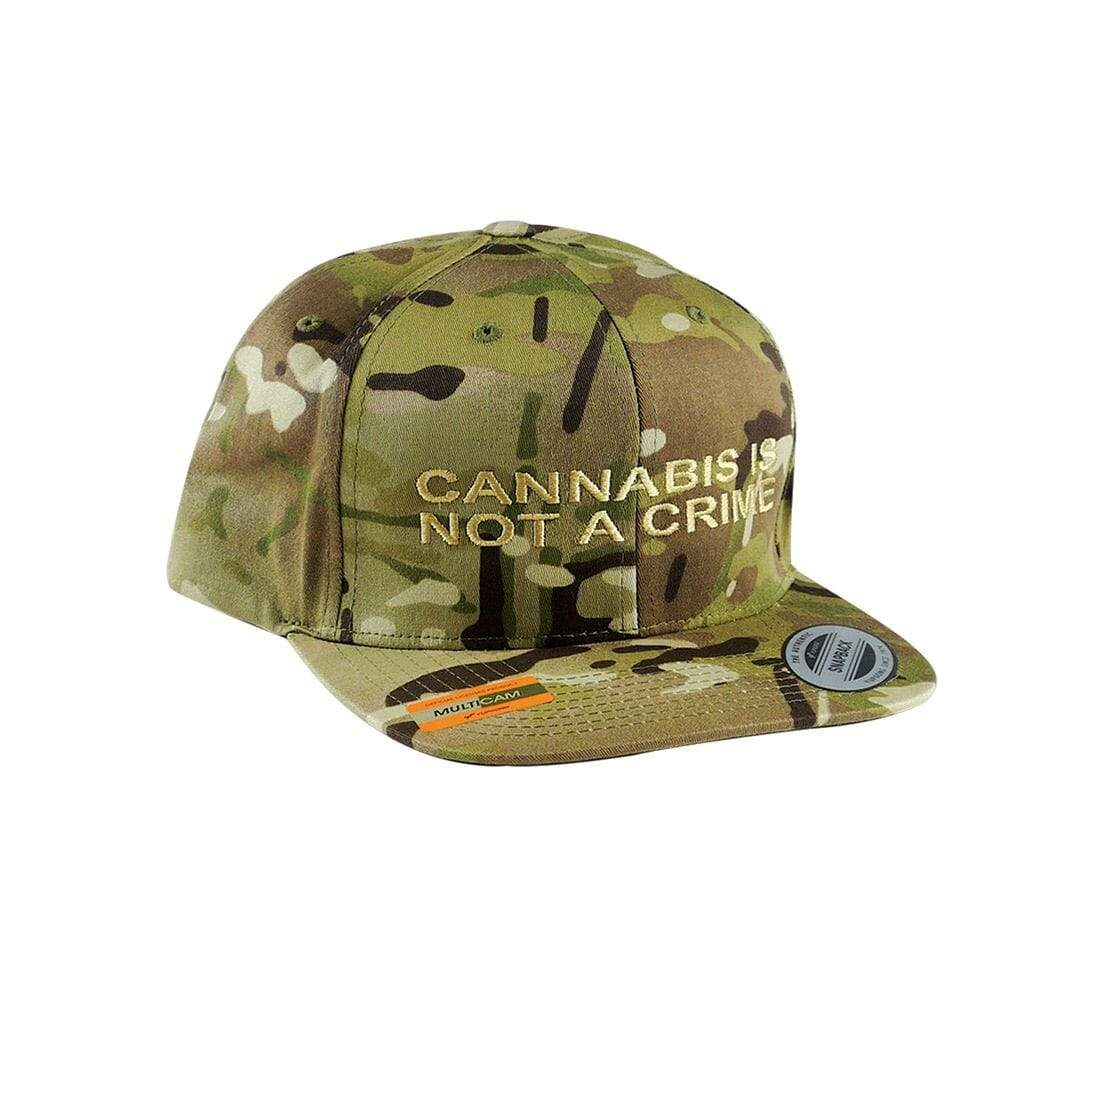 """Not a Crime"" Snapback Hat in Brown Camo"